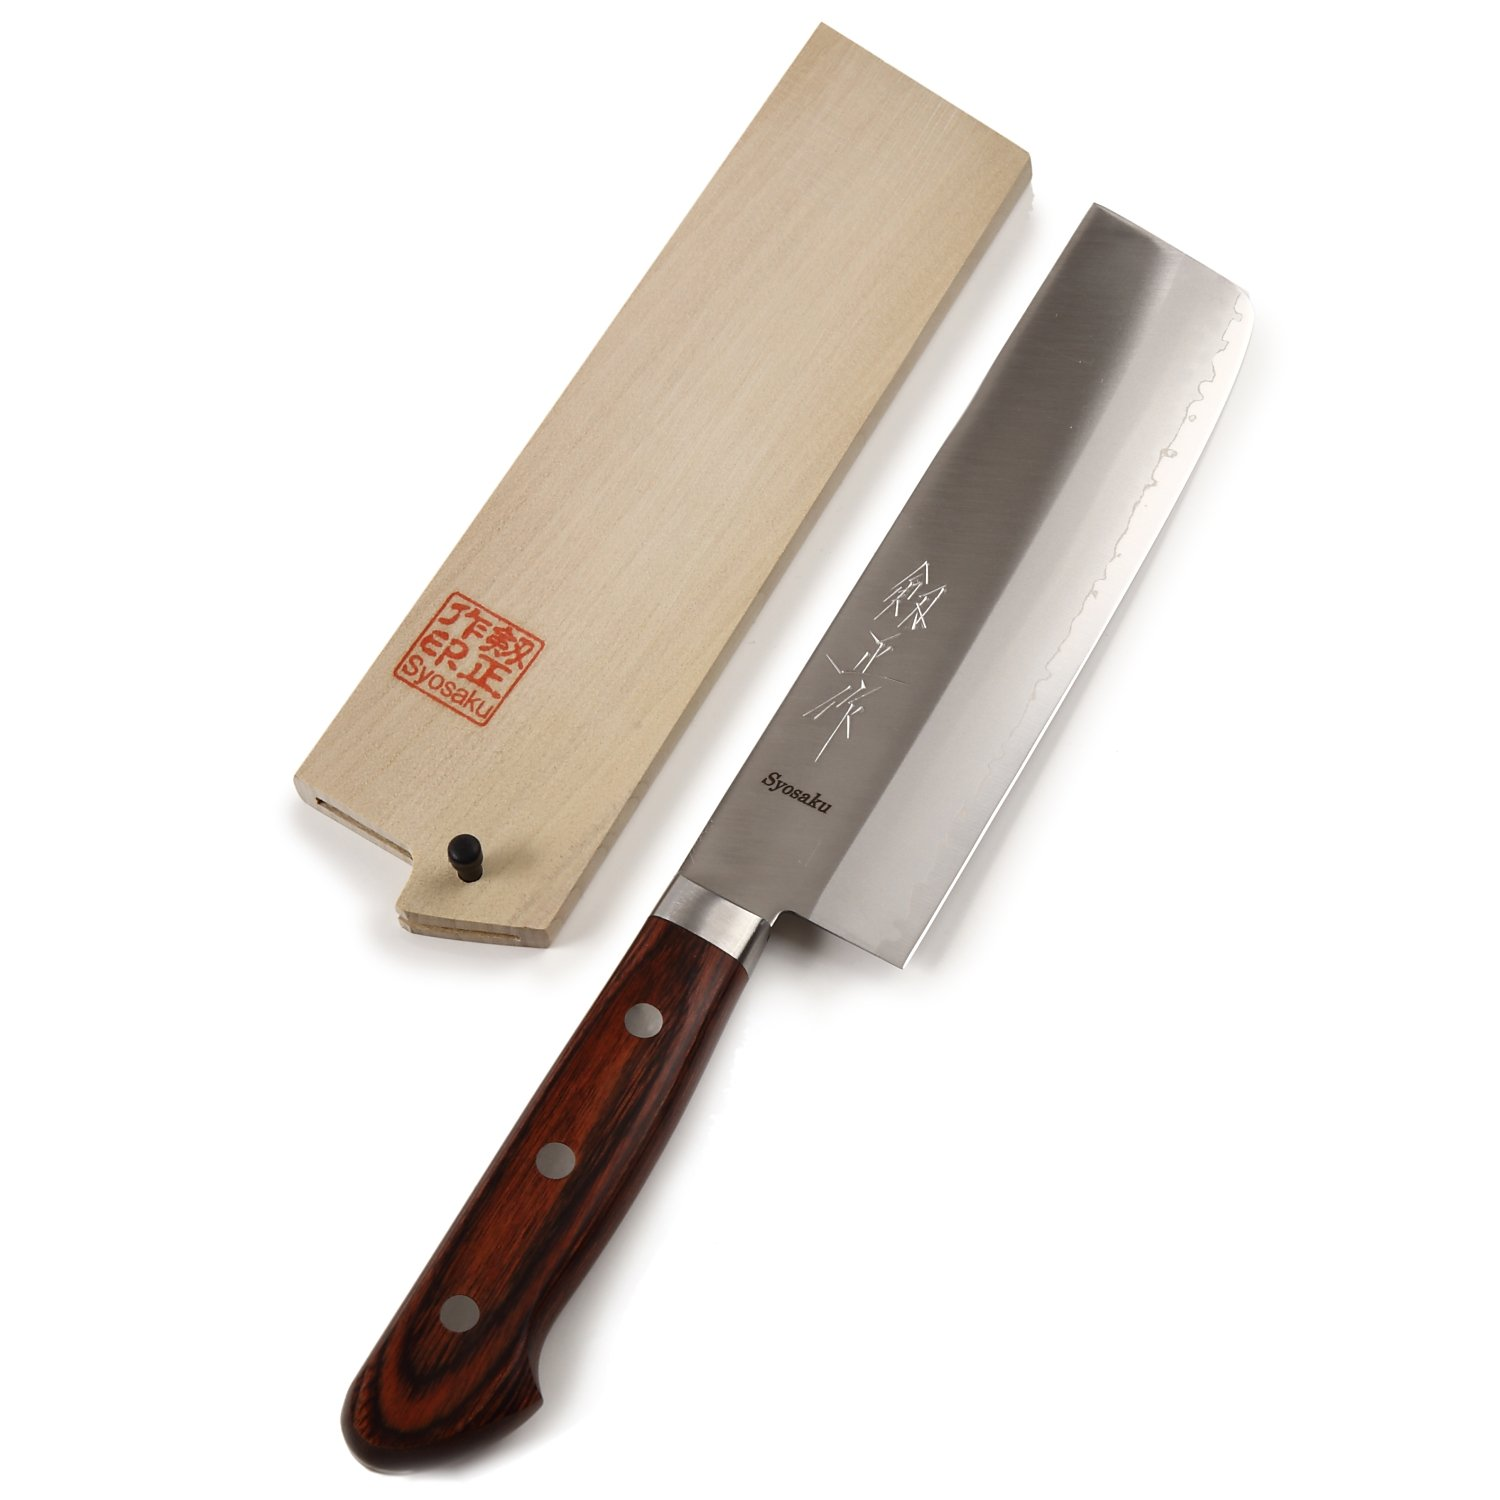 Syosaku Japan Vegetable Knife VG-1 Gold Stainless Steel Mahogany Handle, Nakiri 6.3-inch (160mm) with Magnoila Wood Saya Cover by Syosaku